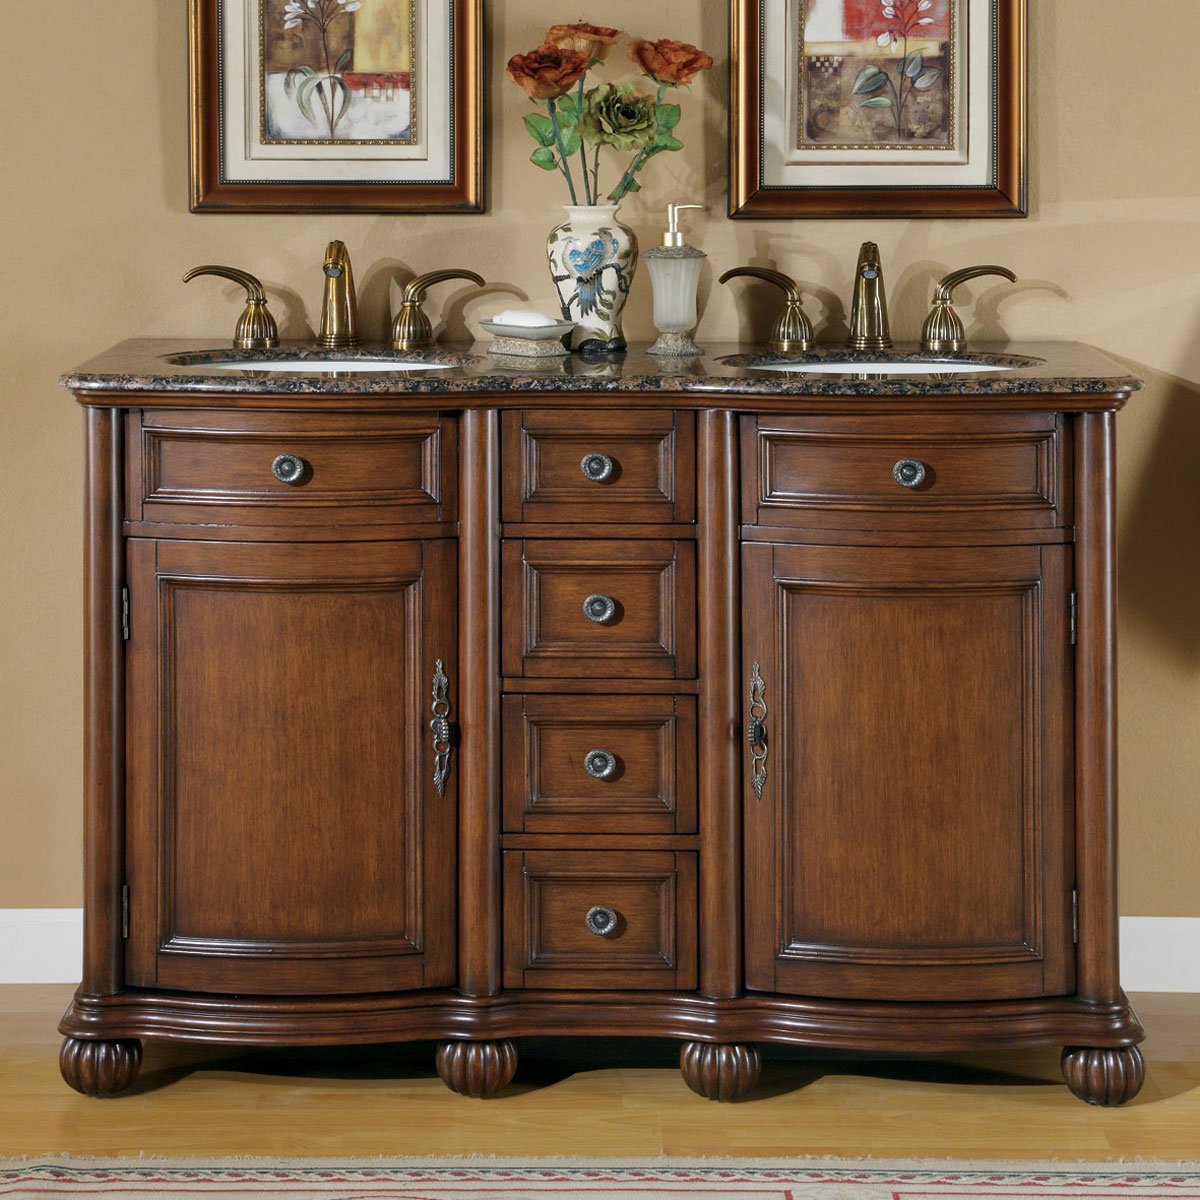 Silkroad Exclusive Baltic Brown Granite Top Double Sink Bathroom Vanity with Cabinet, 52-Inch